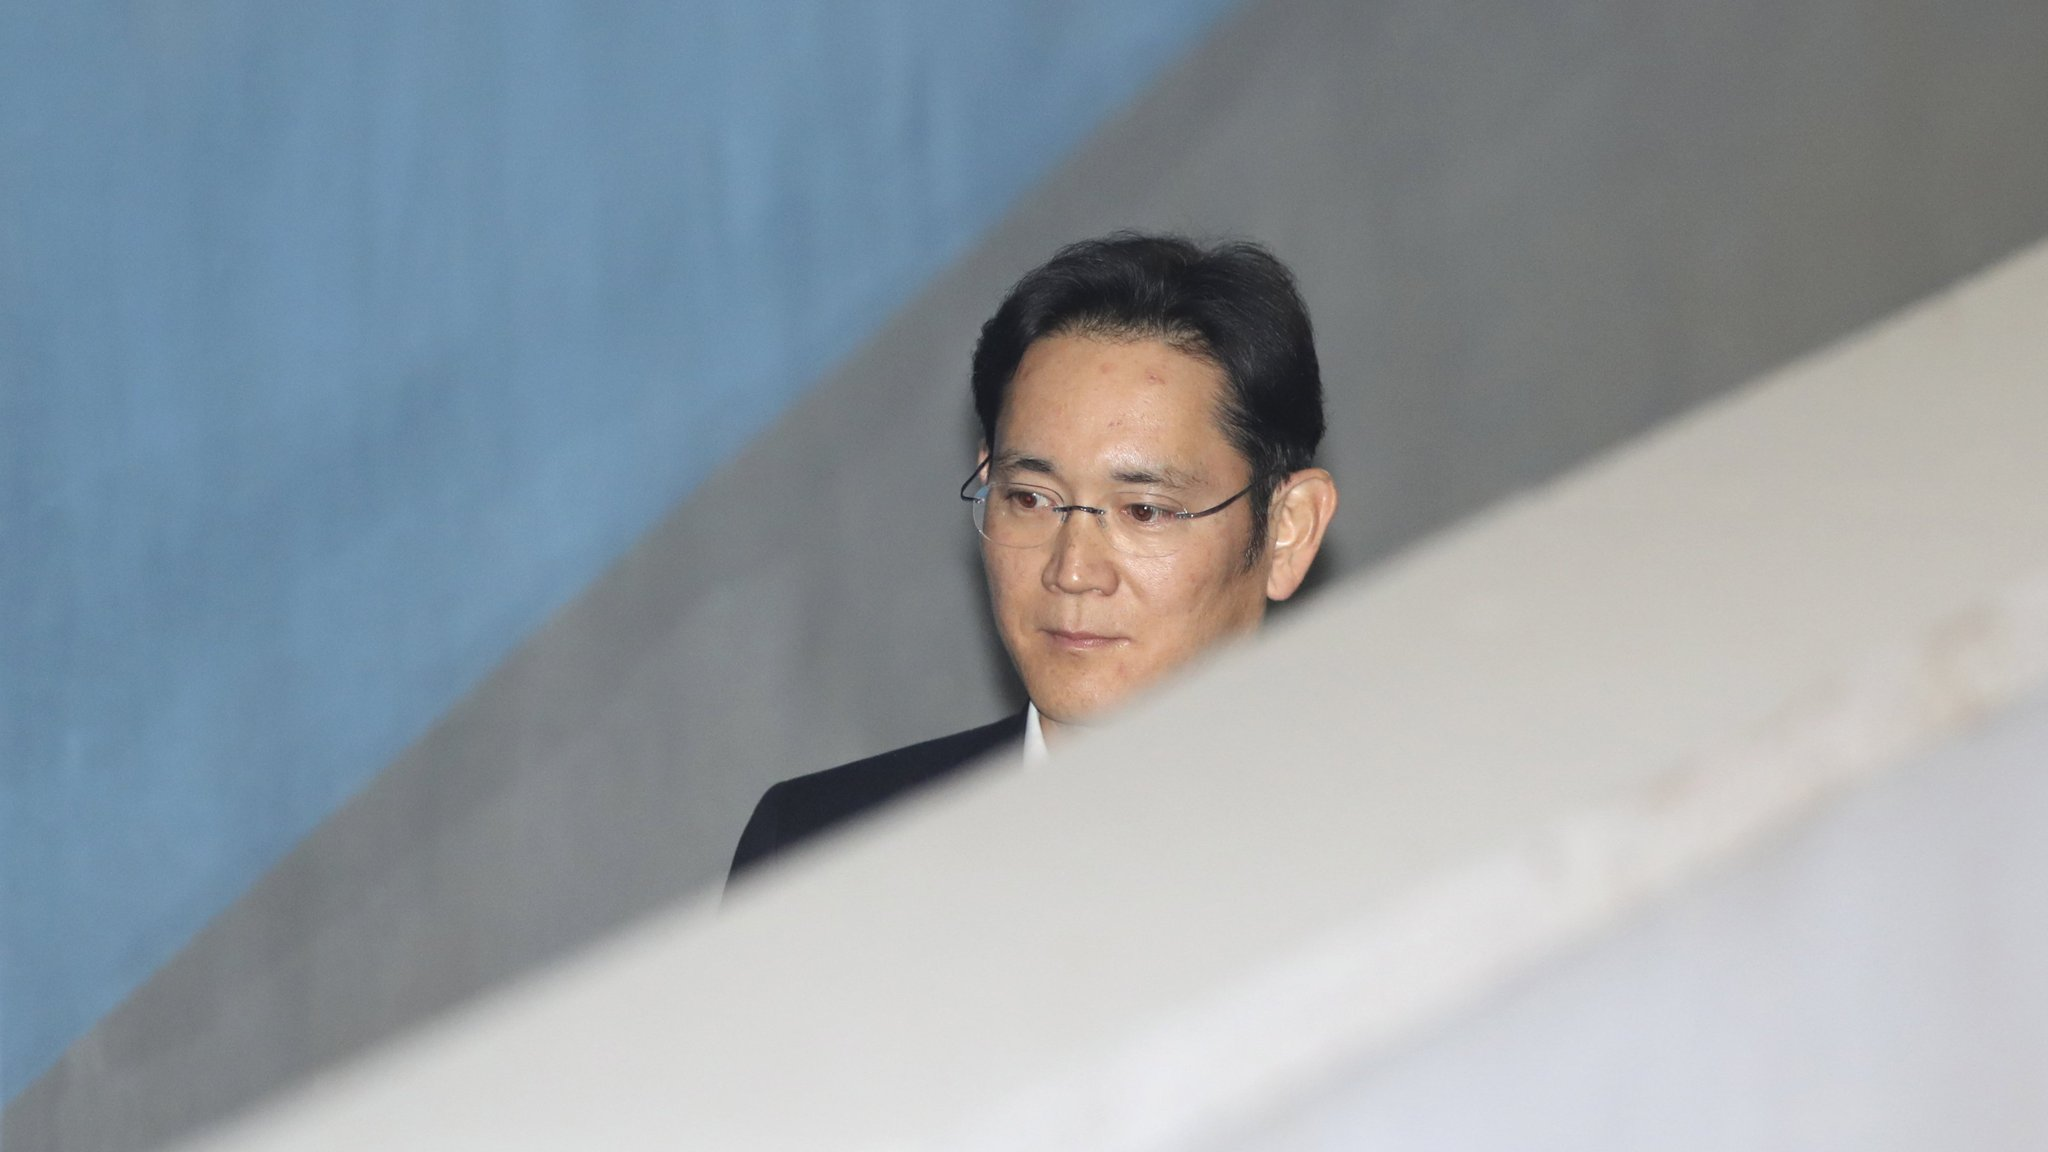 Samsung heir freed with suspended sentence from appeals court